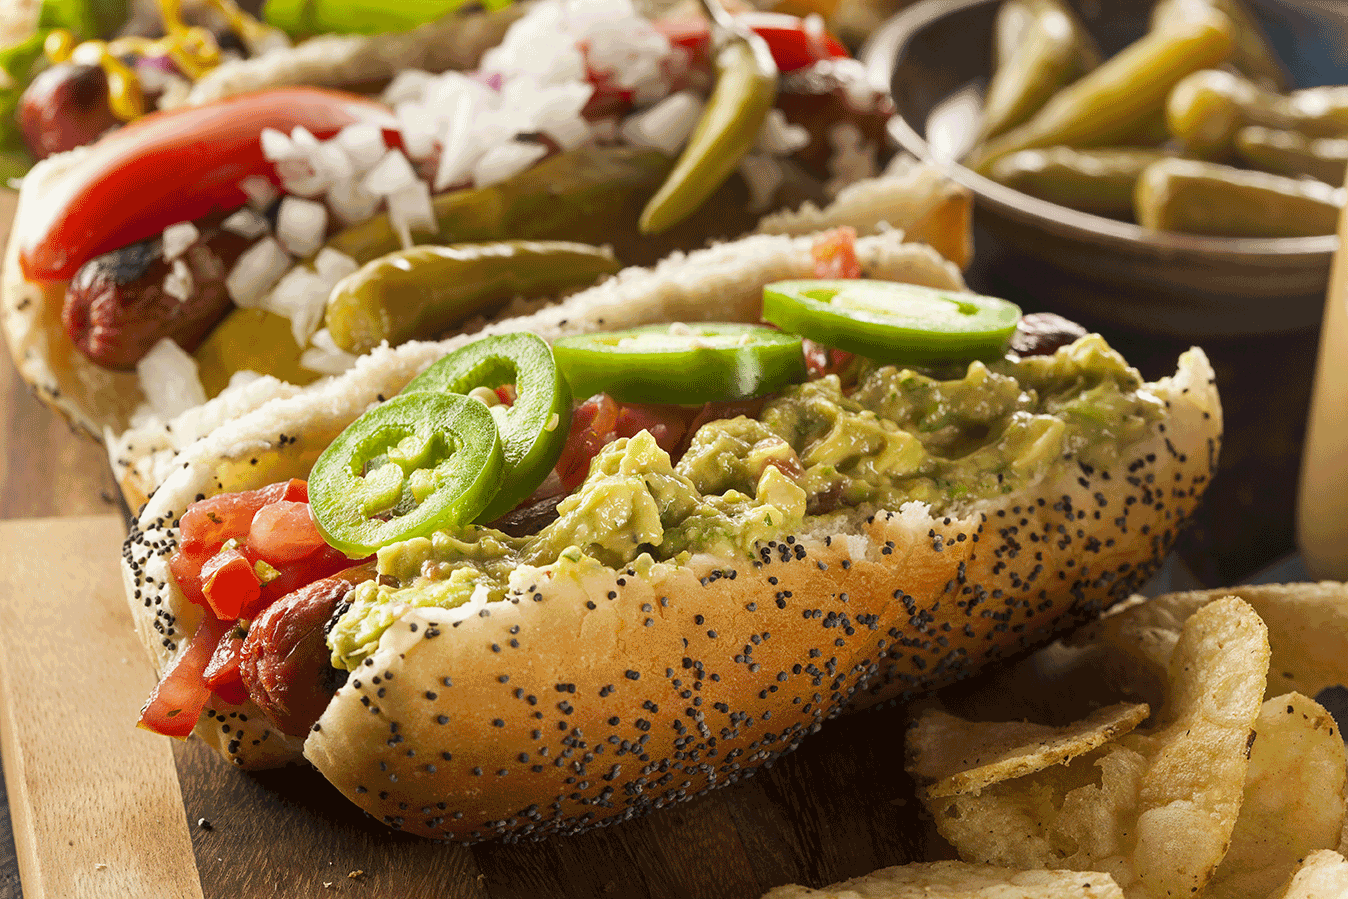 25 Best Hot Dog Recipes via @mermaidsandmojitos